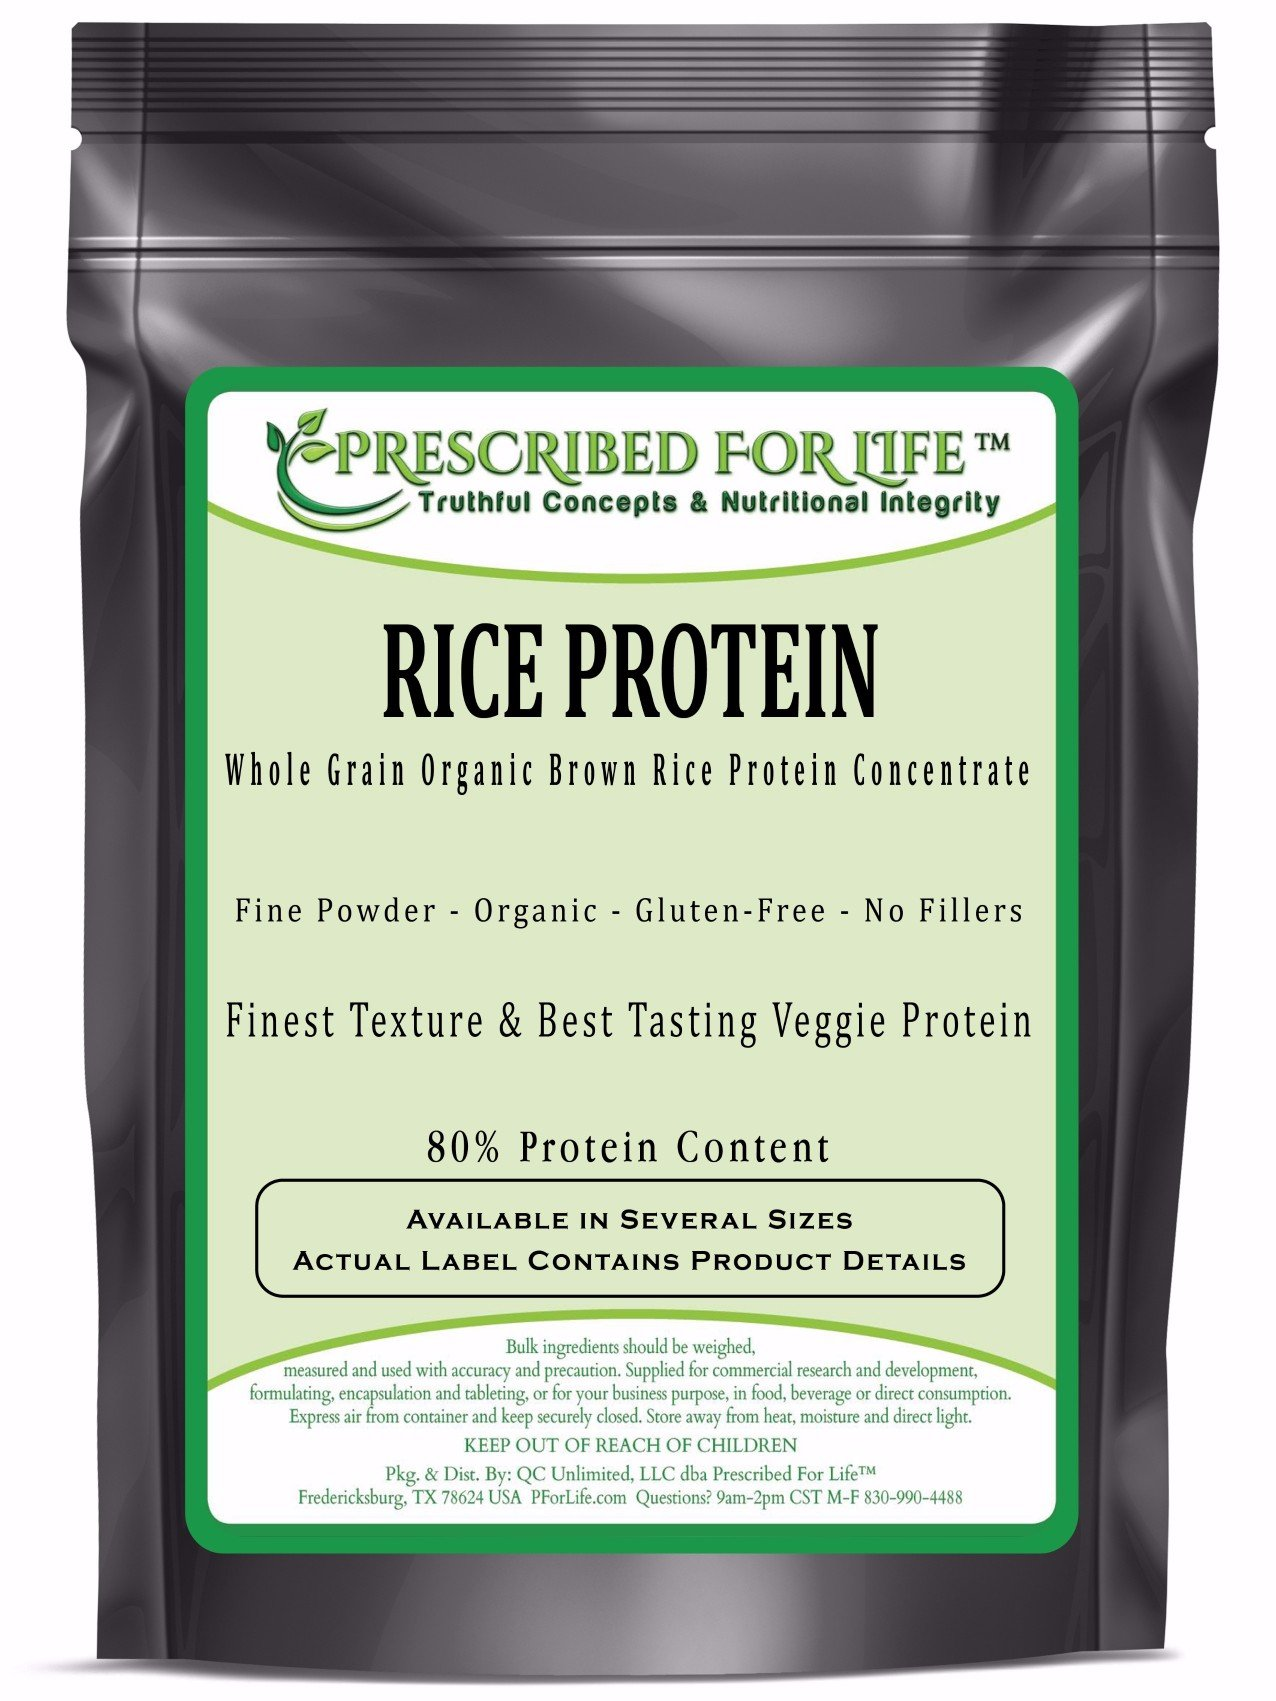 Rice Protein - Whole Grain Brown Rice Protein Concentrate - 80% Protein ING: Organic Powder, 10 kg